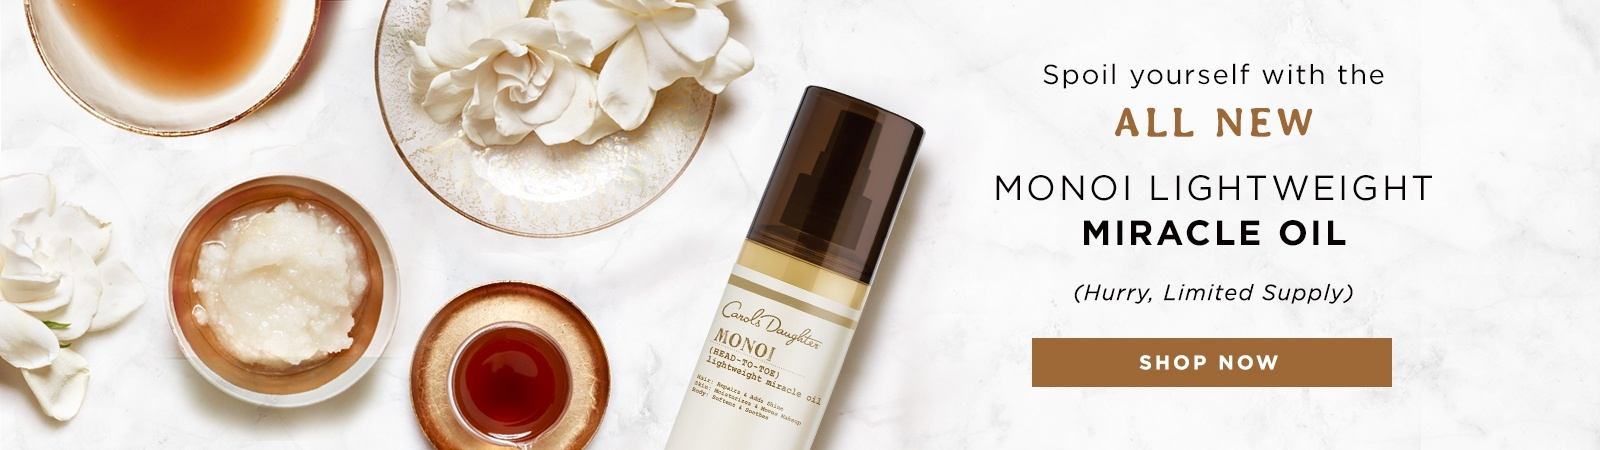 Shop Monoi Lightweight Miracle Oil